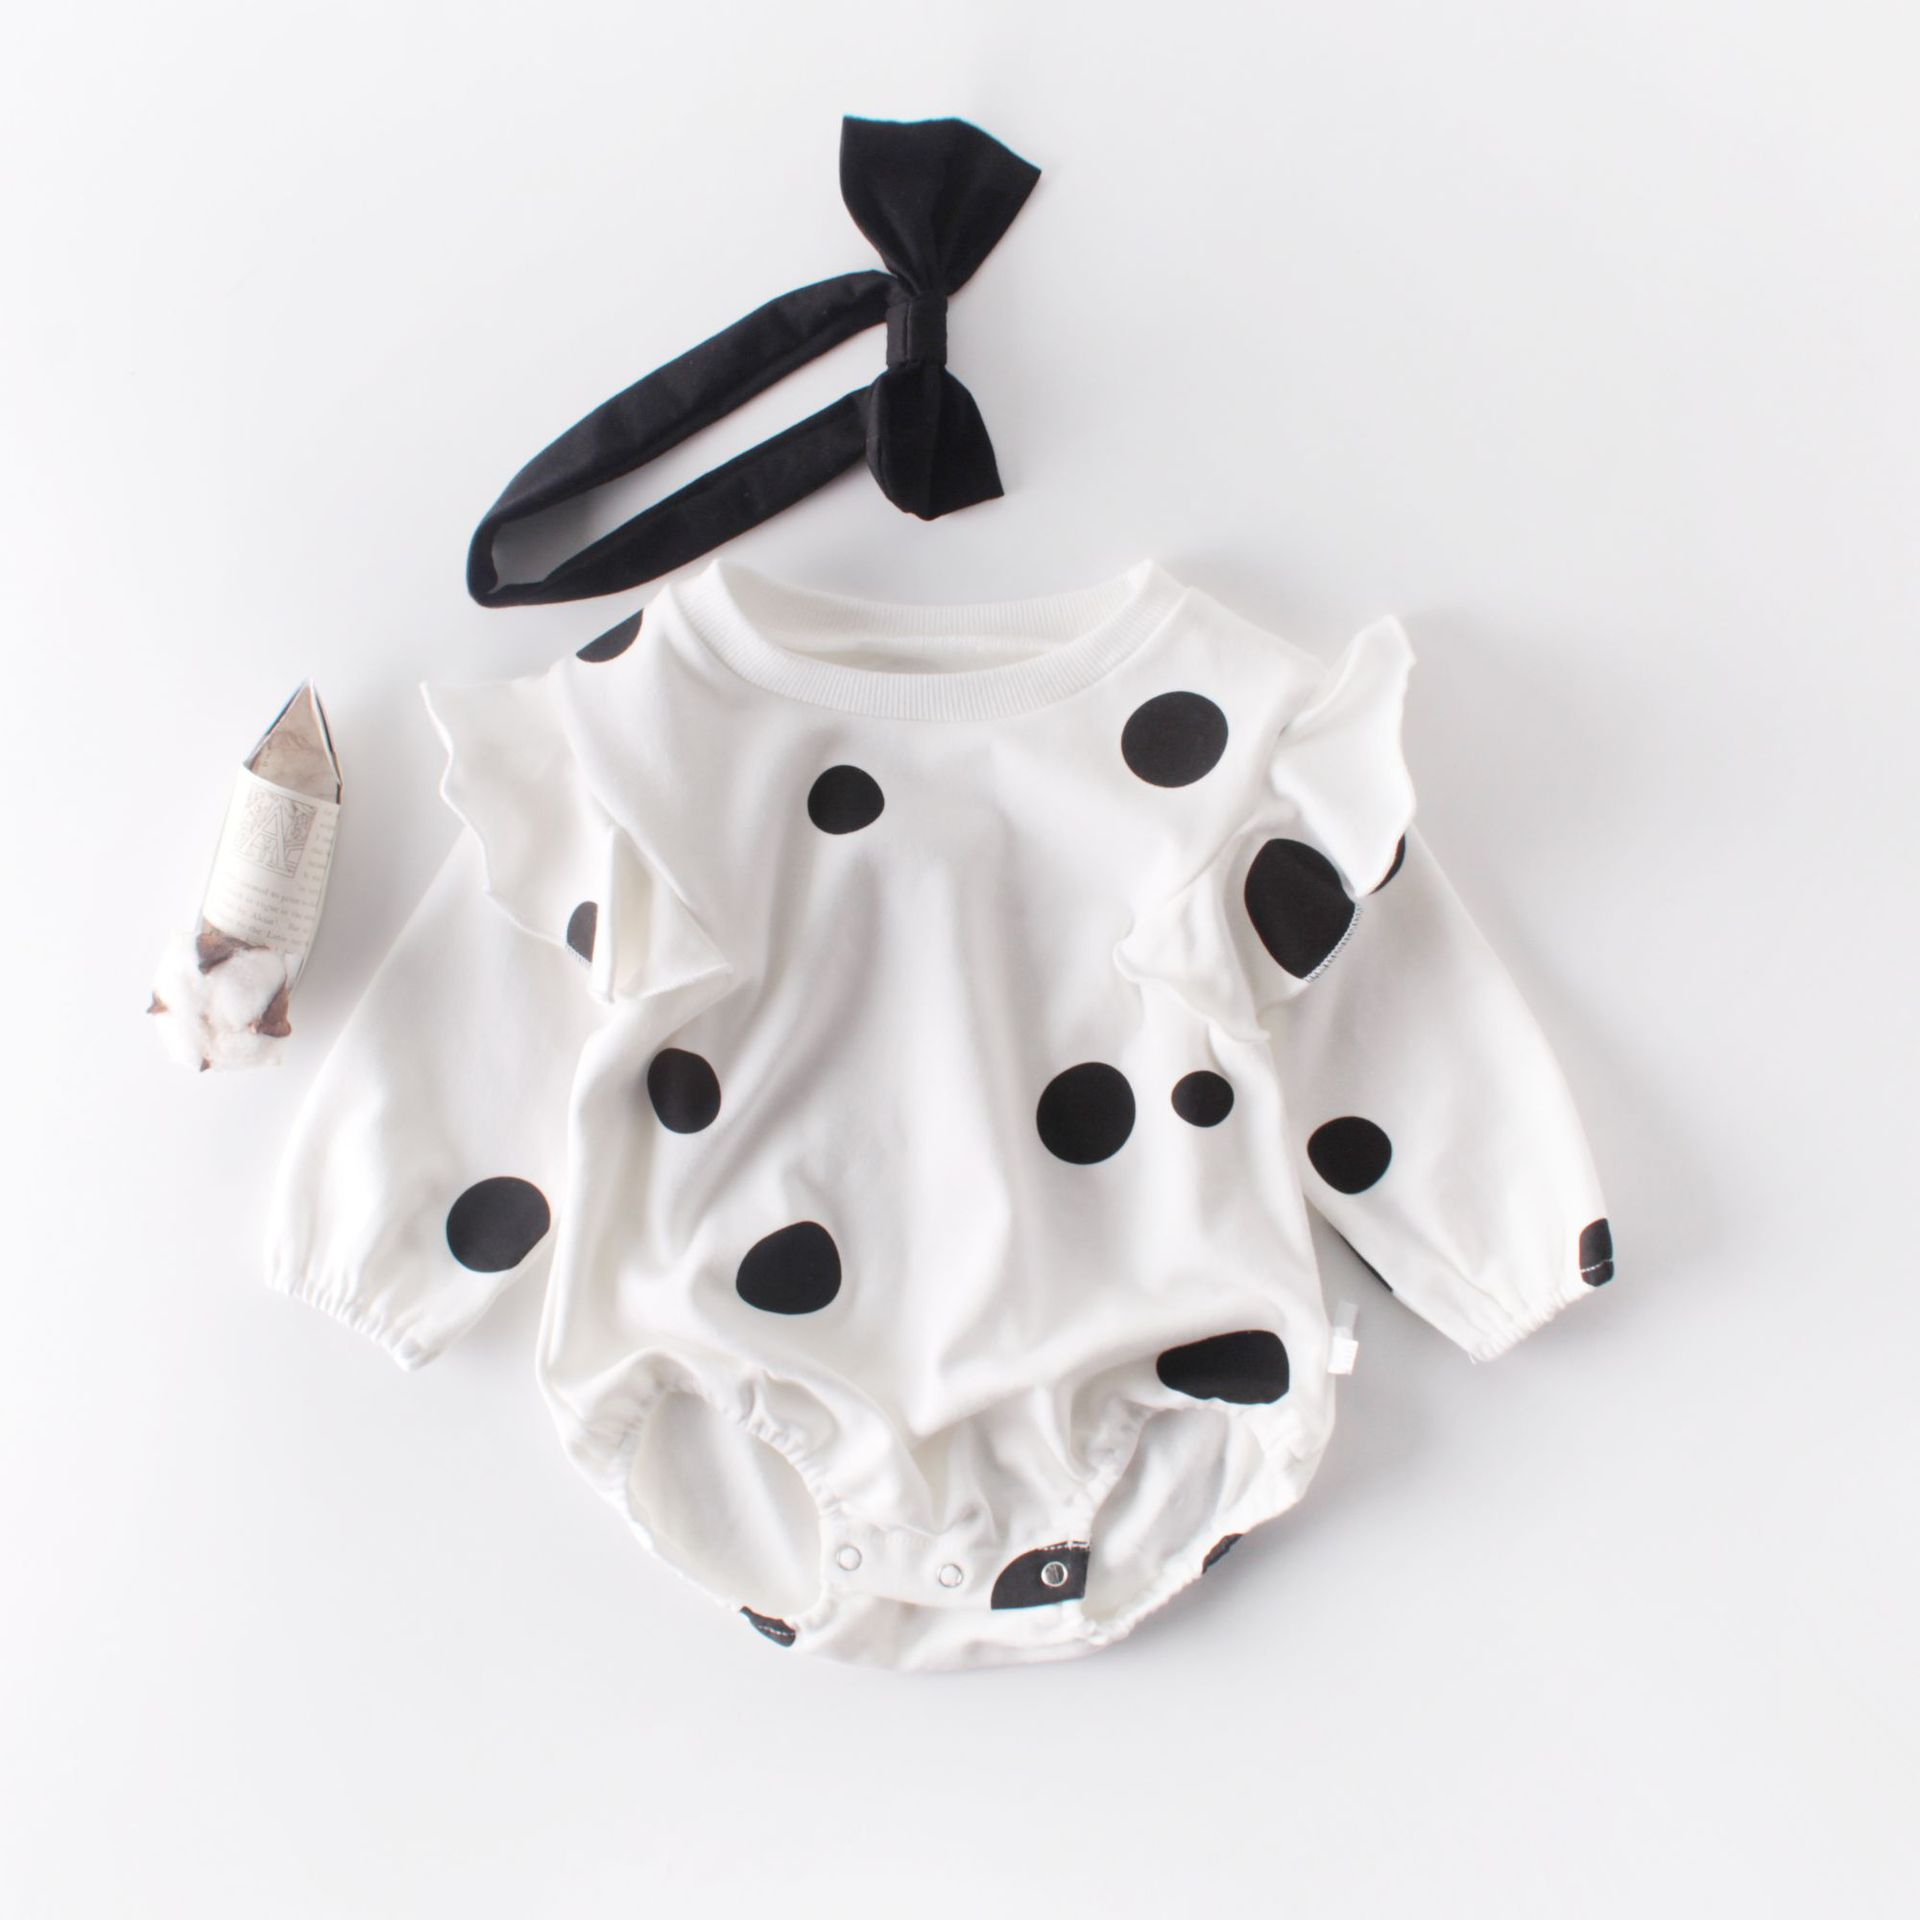 MILANCEL 2019 Autumn Baby Bodysuits Polka Dot Infant Girls Jumpsuits With Headband Full Sleeve Baby Outfit